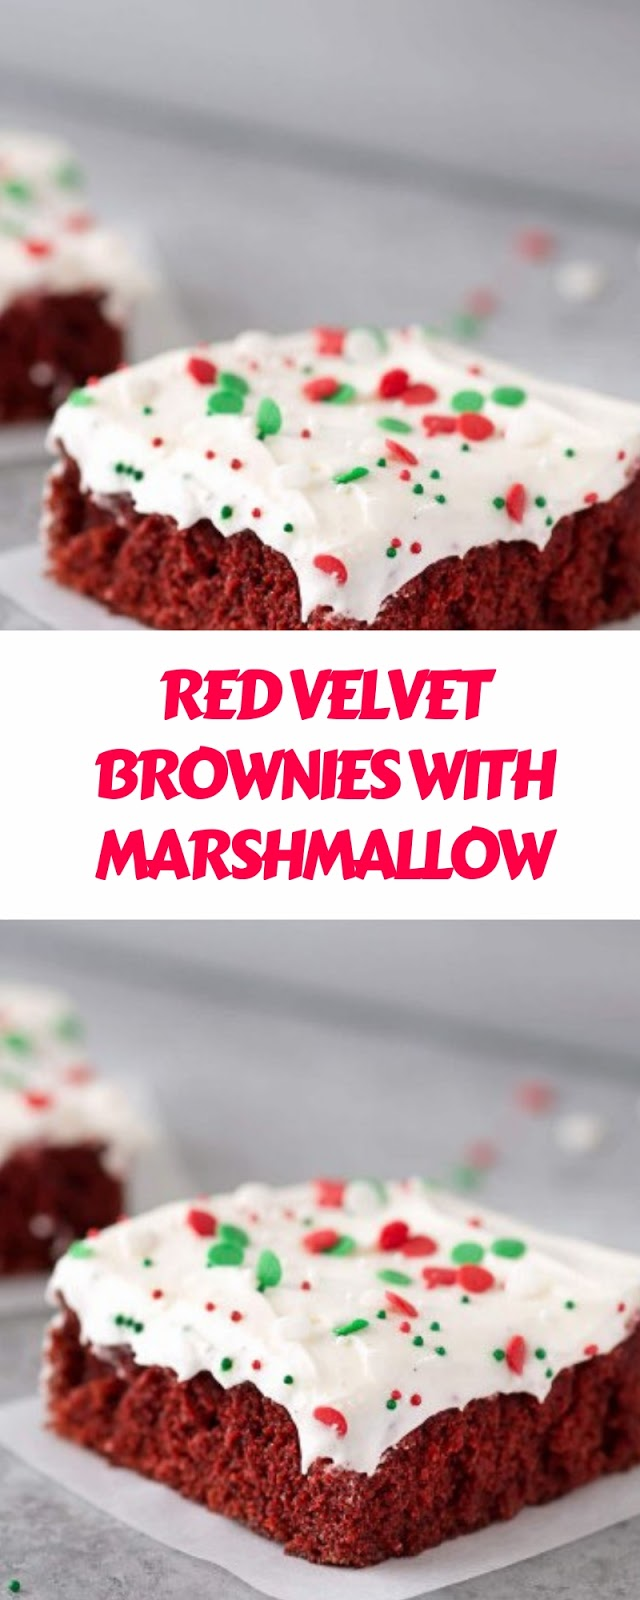 RED VELVET BROWNIES WITH MARSHMALLOW